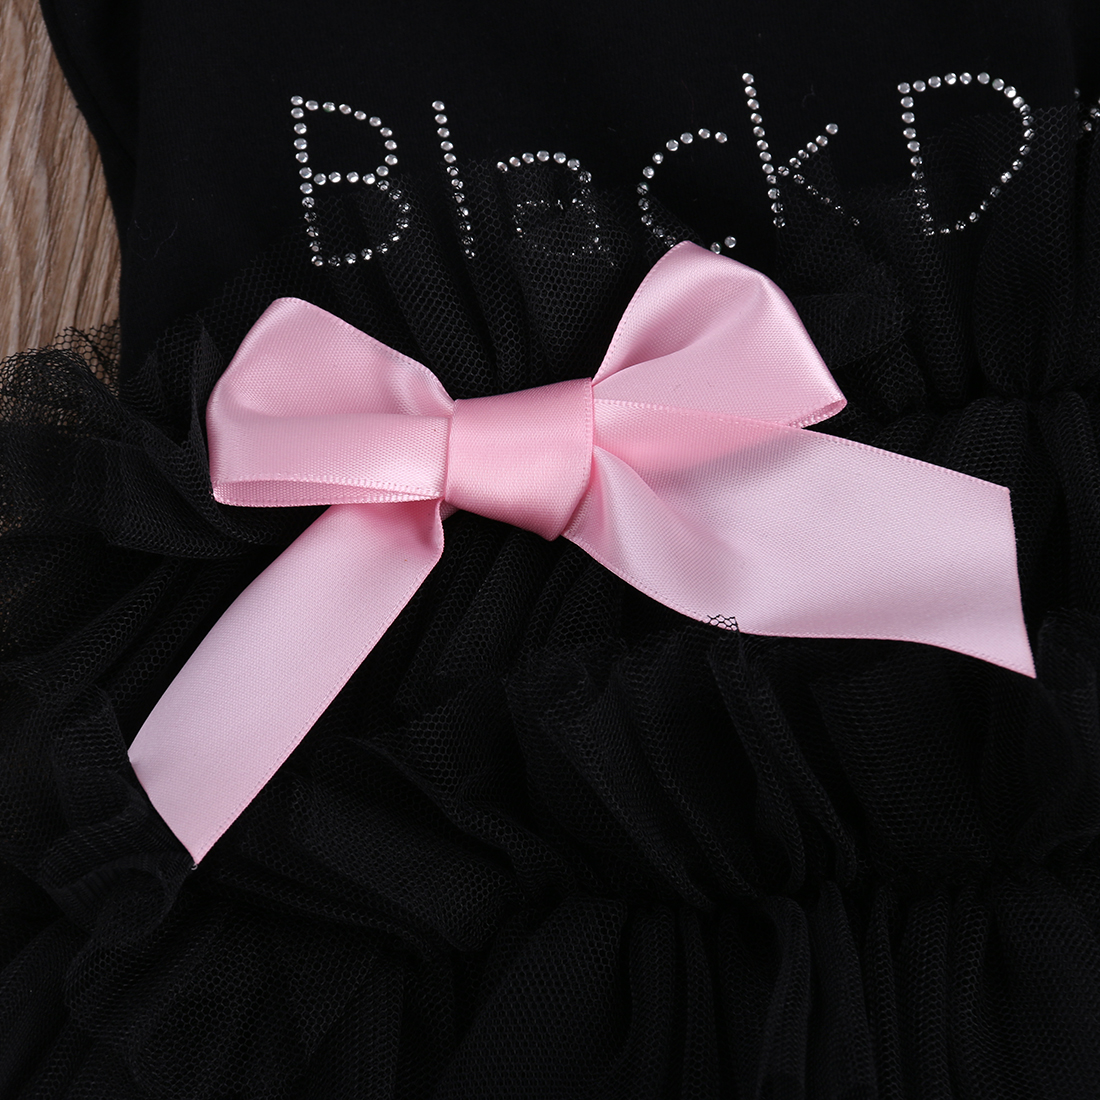 4c0ed3a6dc93c3 MY LITTER BLACK DRESS Baby Girls Clothes Lace Sleeveless Romper Ruffle Bow  tie 2017 New Summer Jumpsuit Outfits One pieces-in Rompers from Mother    Kids on ...